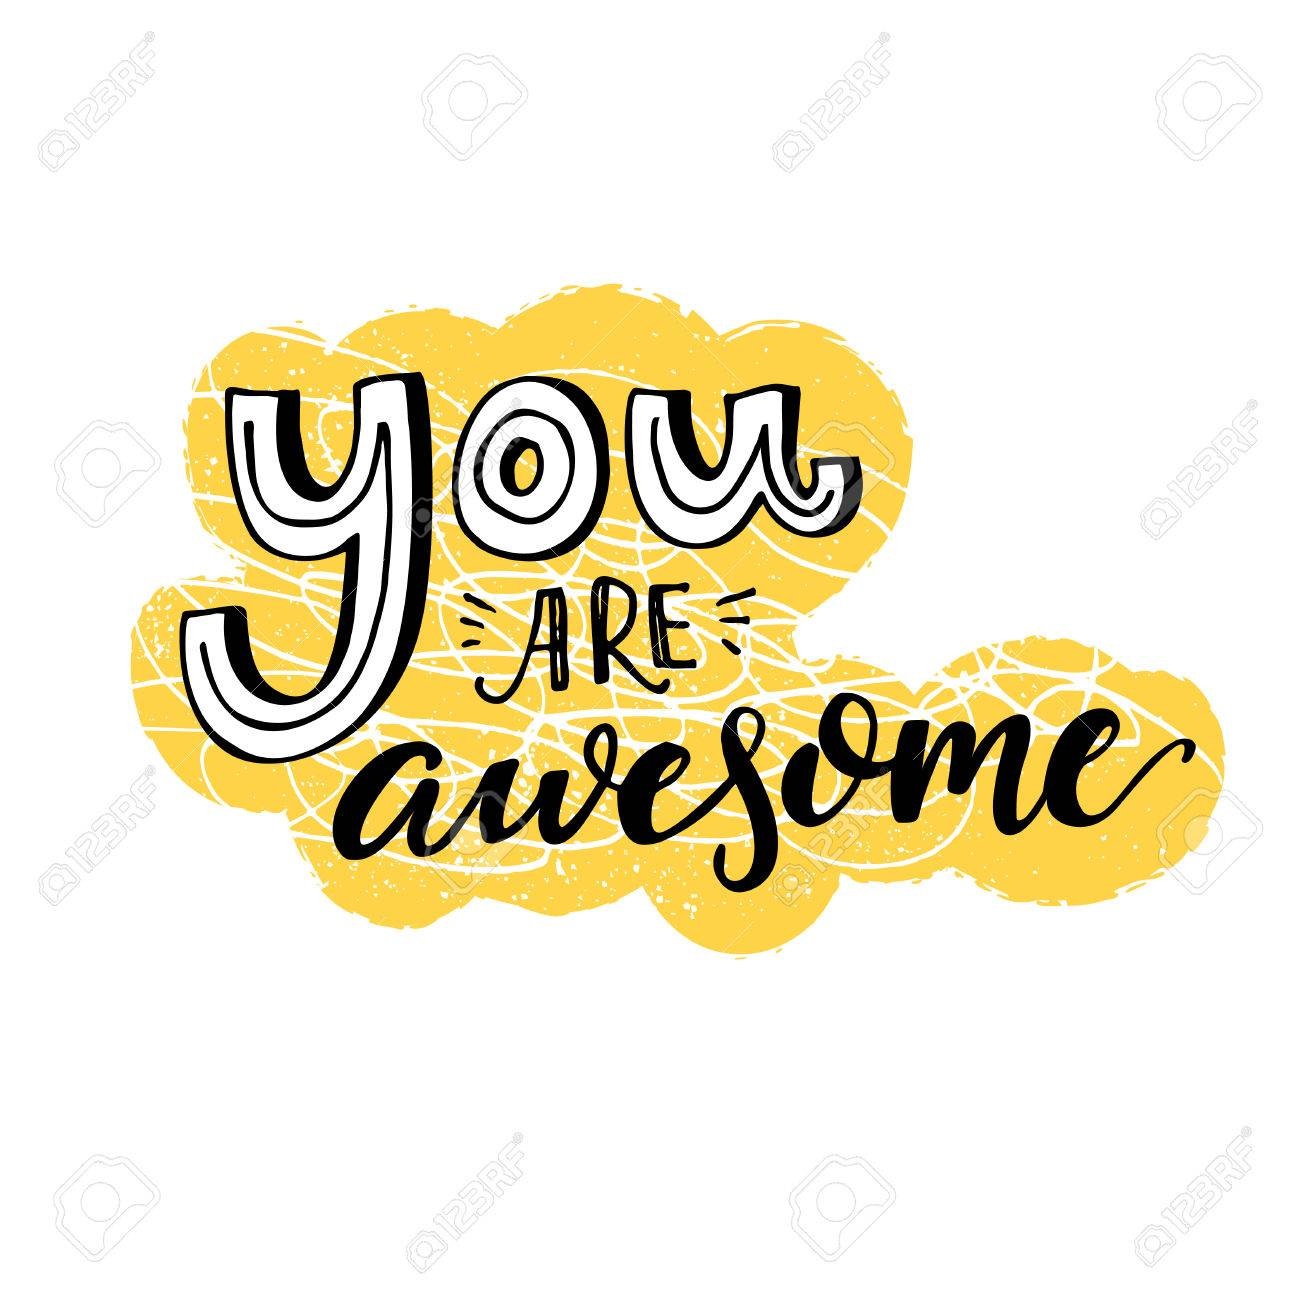 You are awesome. Motivational saying, inspirational quote design...